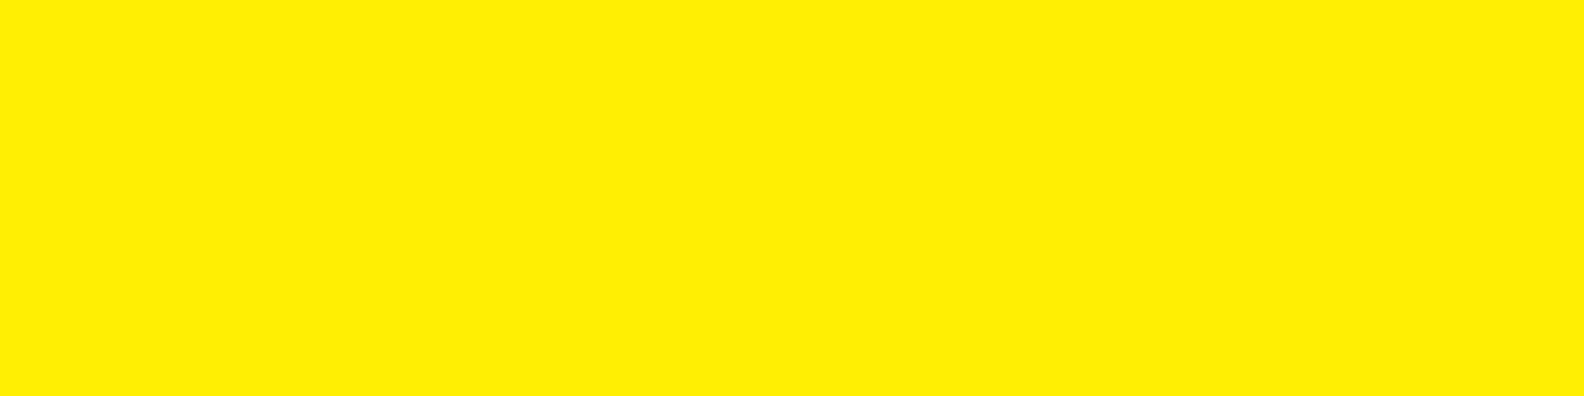 1584x396 Yellow Process Solid Color Background